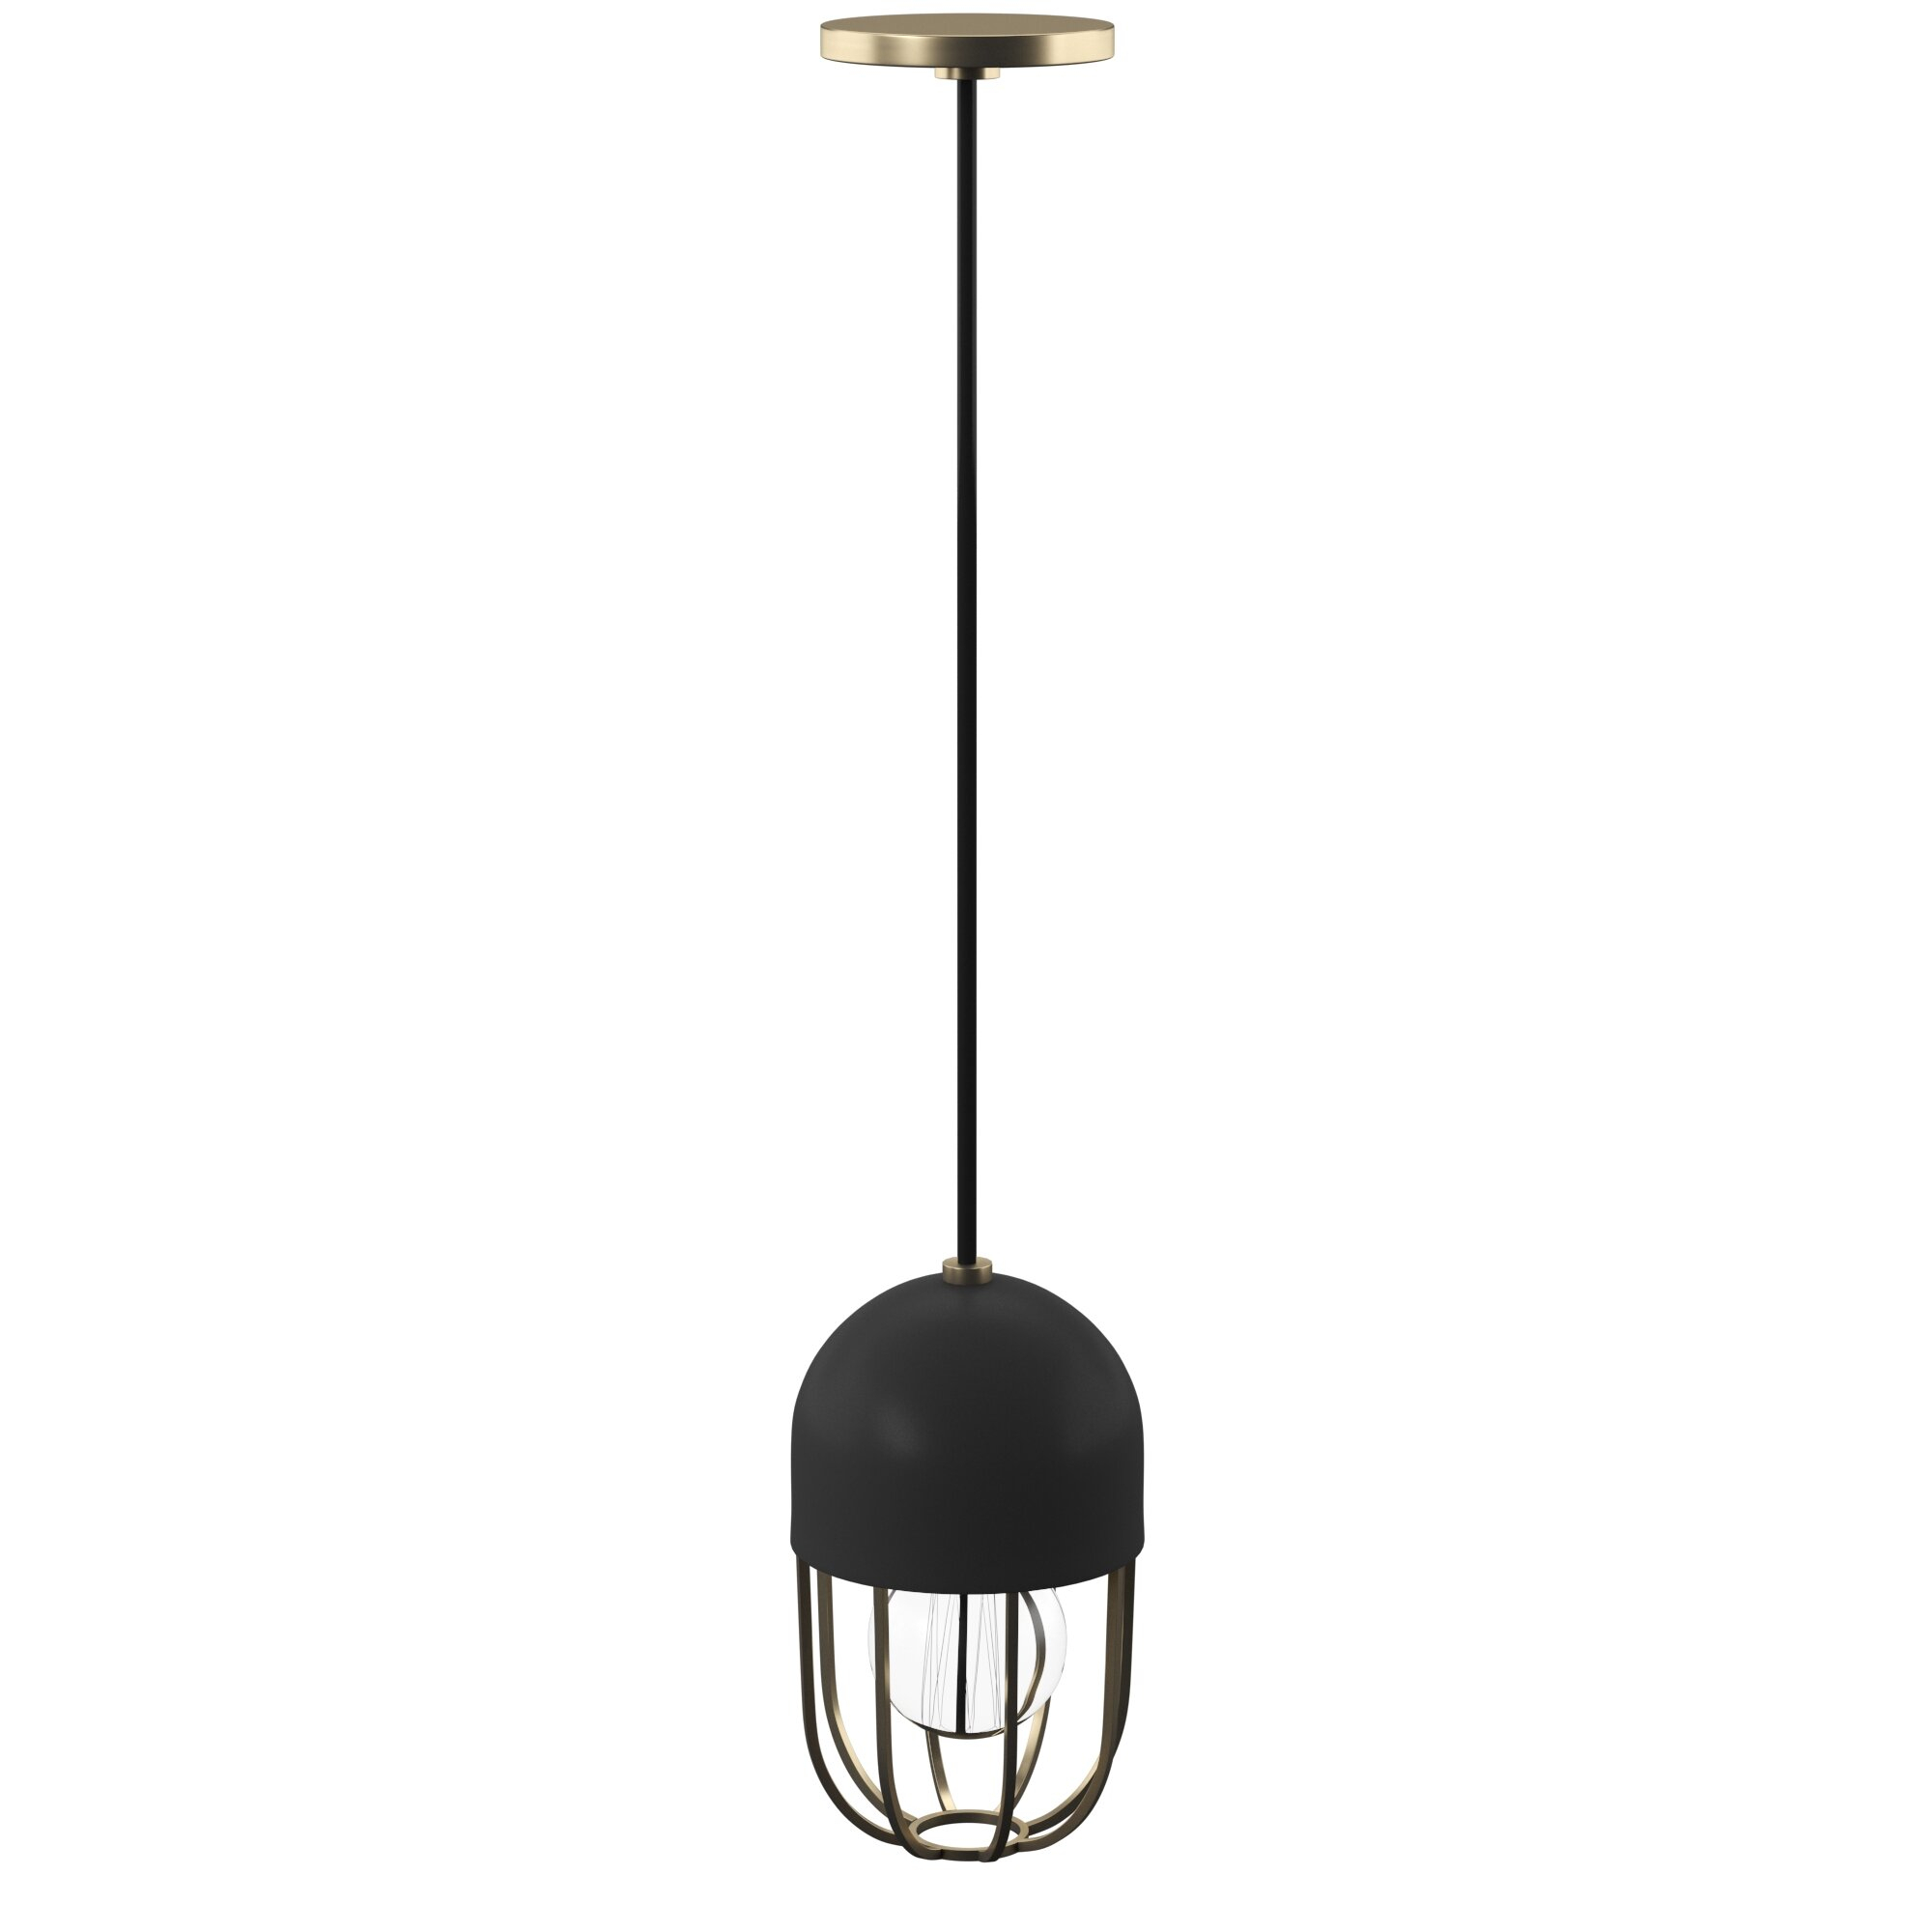 Kater 1 Light Single Dome Pendant Intended For Abordale 1 Light Single Dome Pendants (Photo 7 of 30)